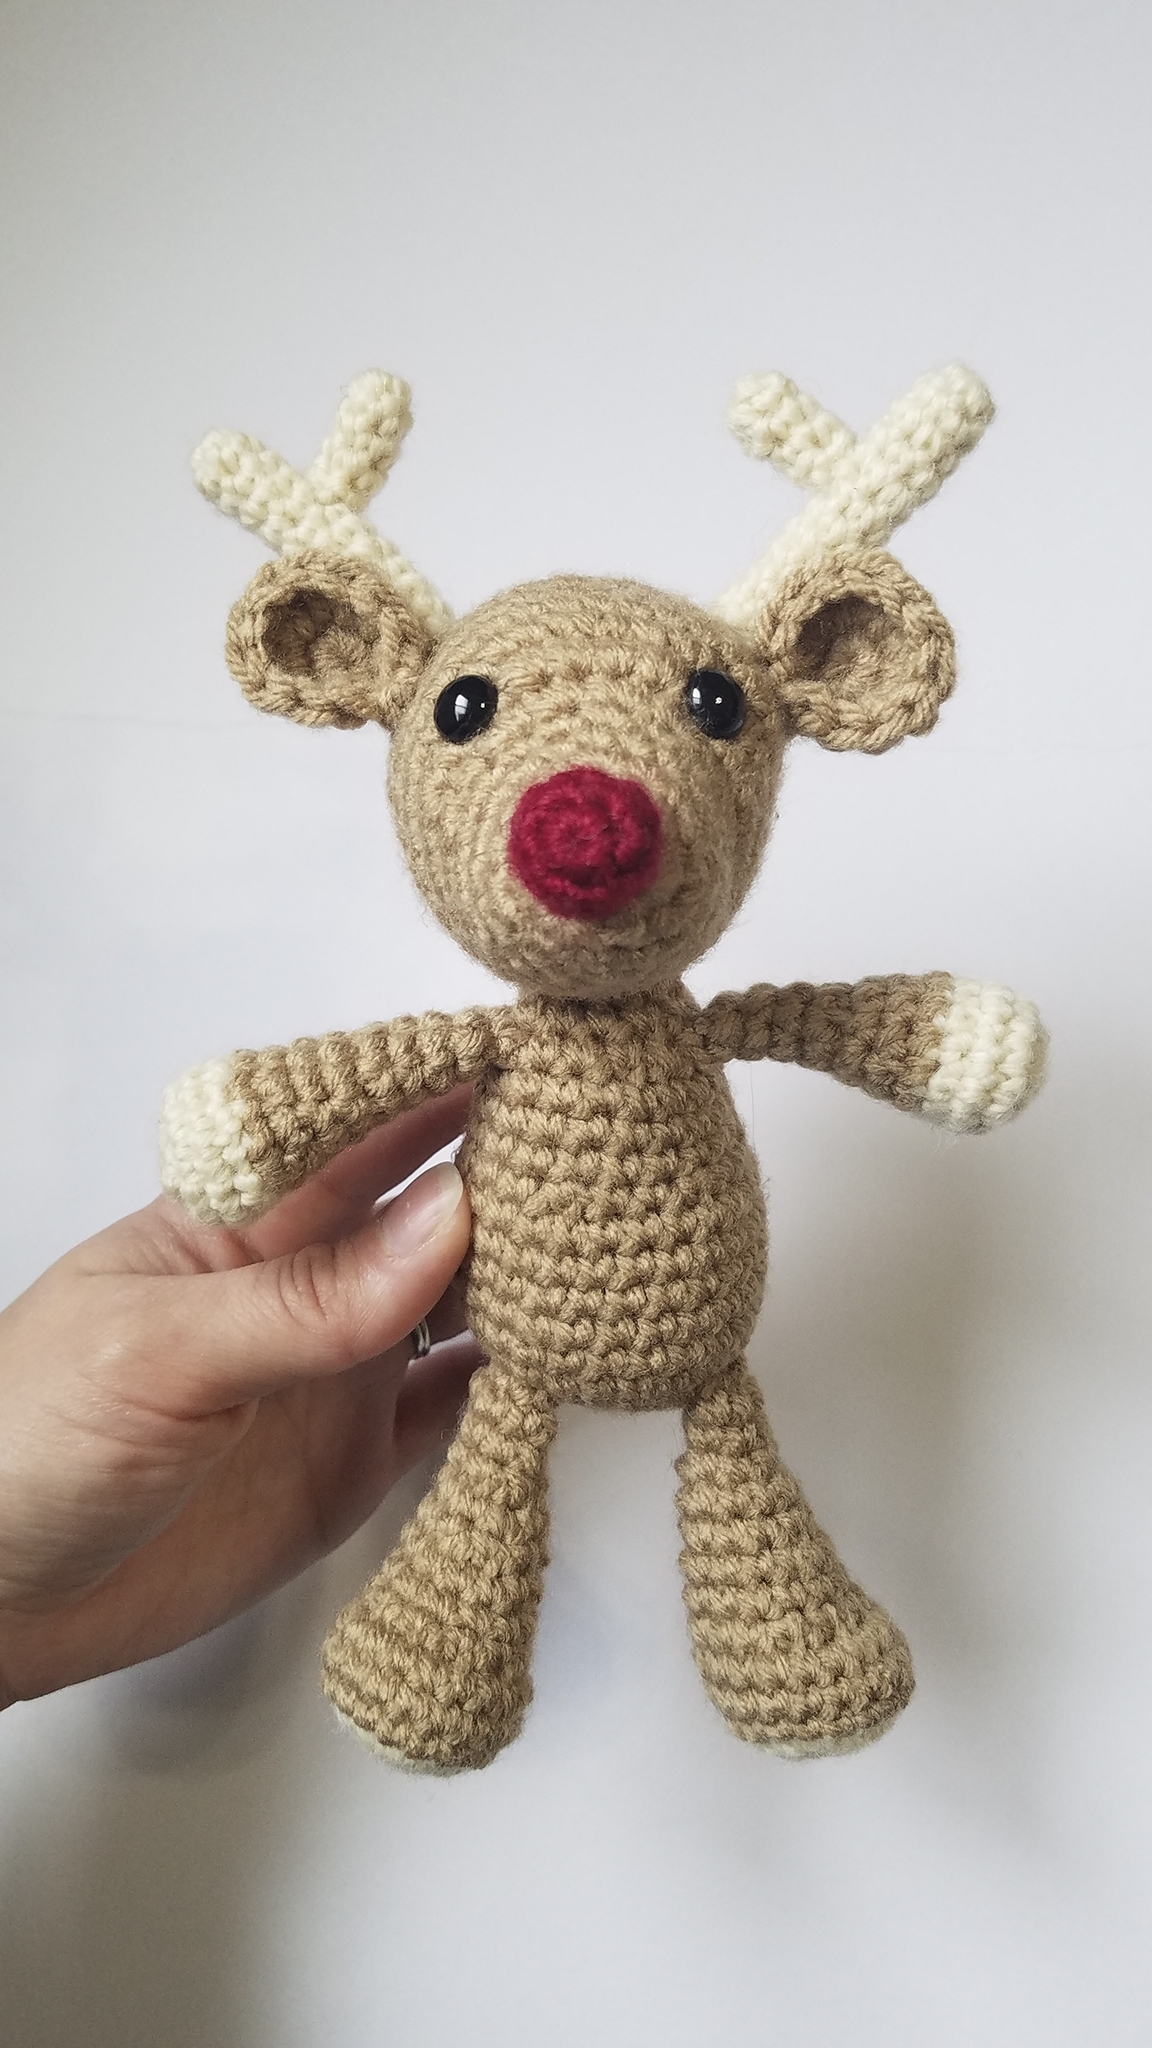 Crochet Red-Nosed Reindeer Pattern | Crafty Tater